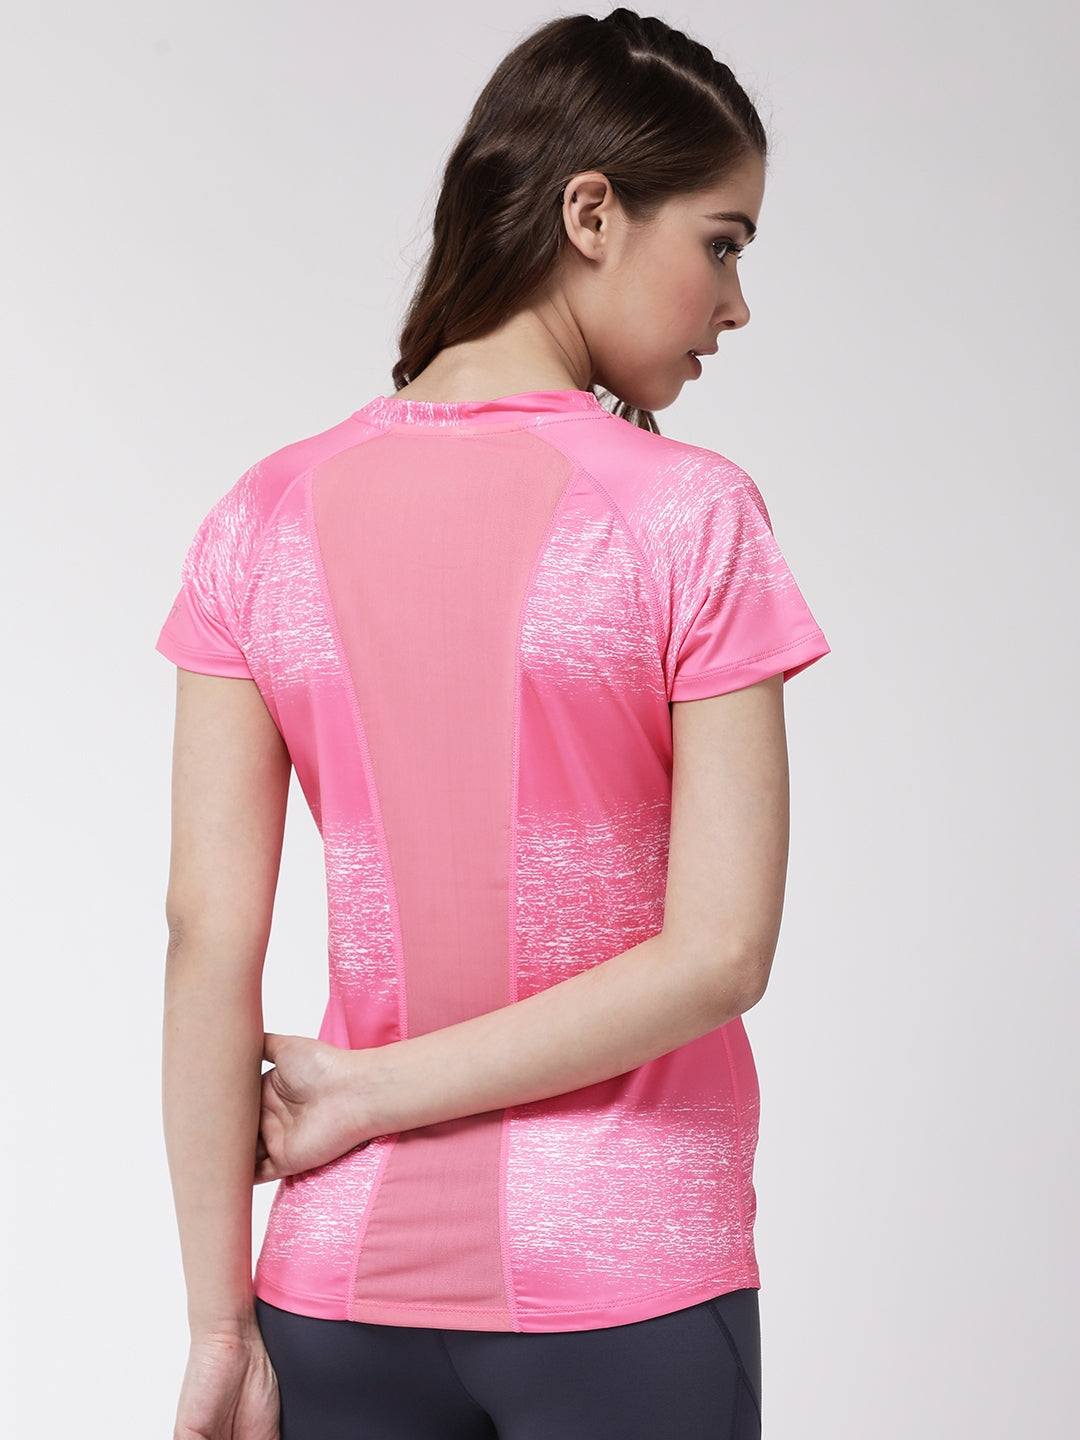 Fitkin women printed back mesh panel gym top